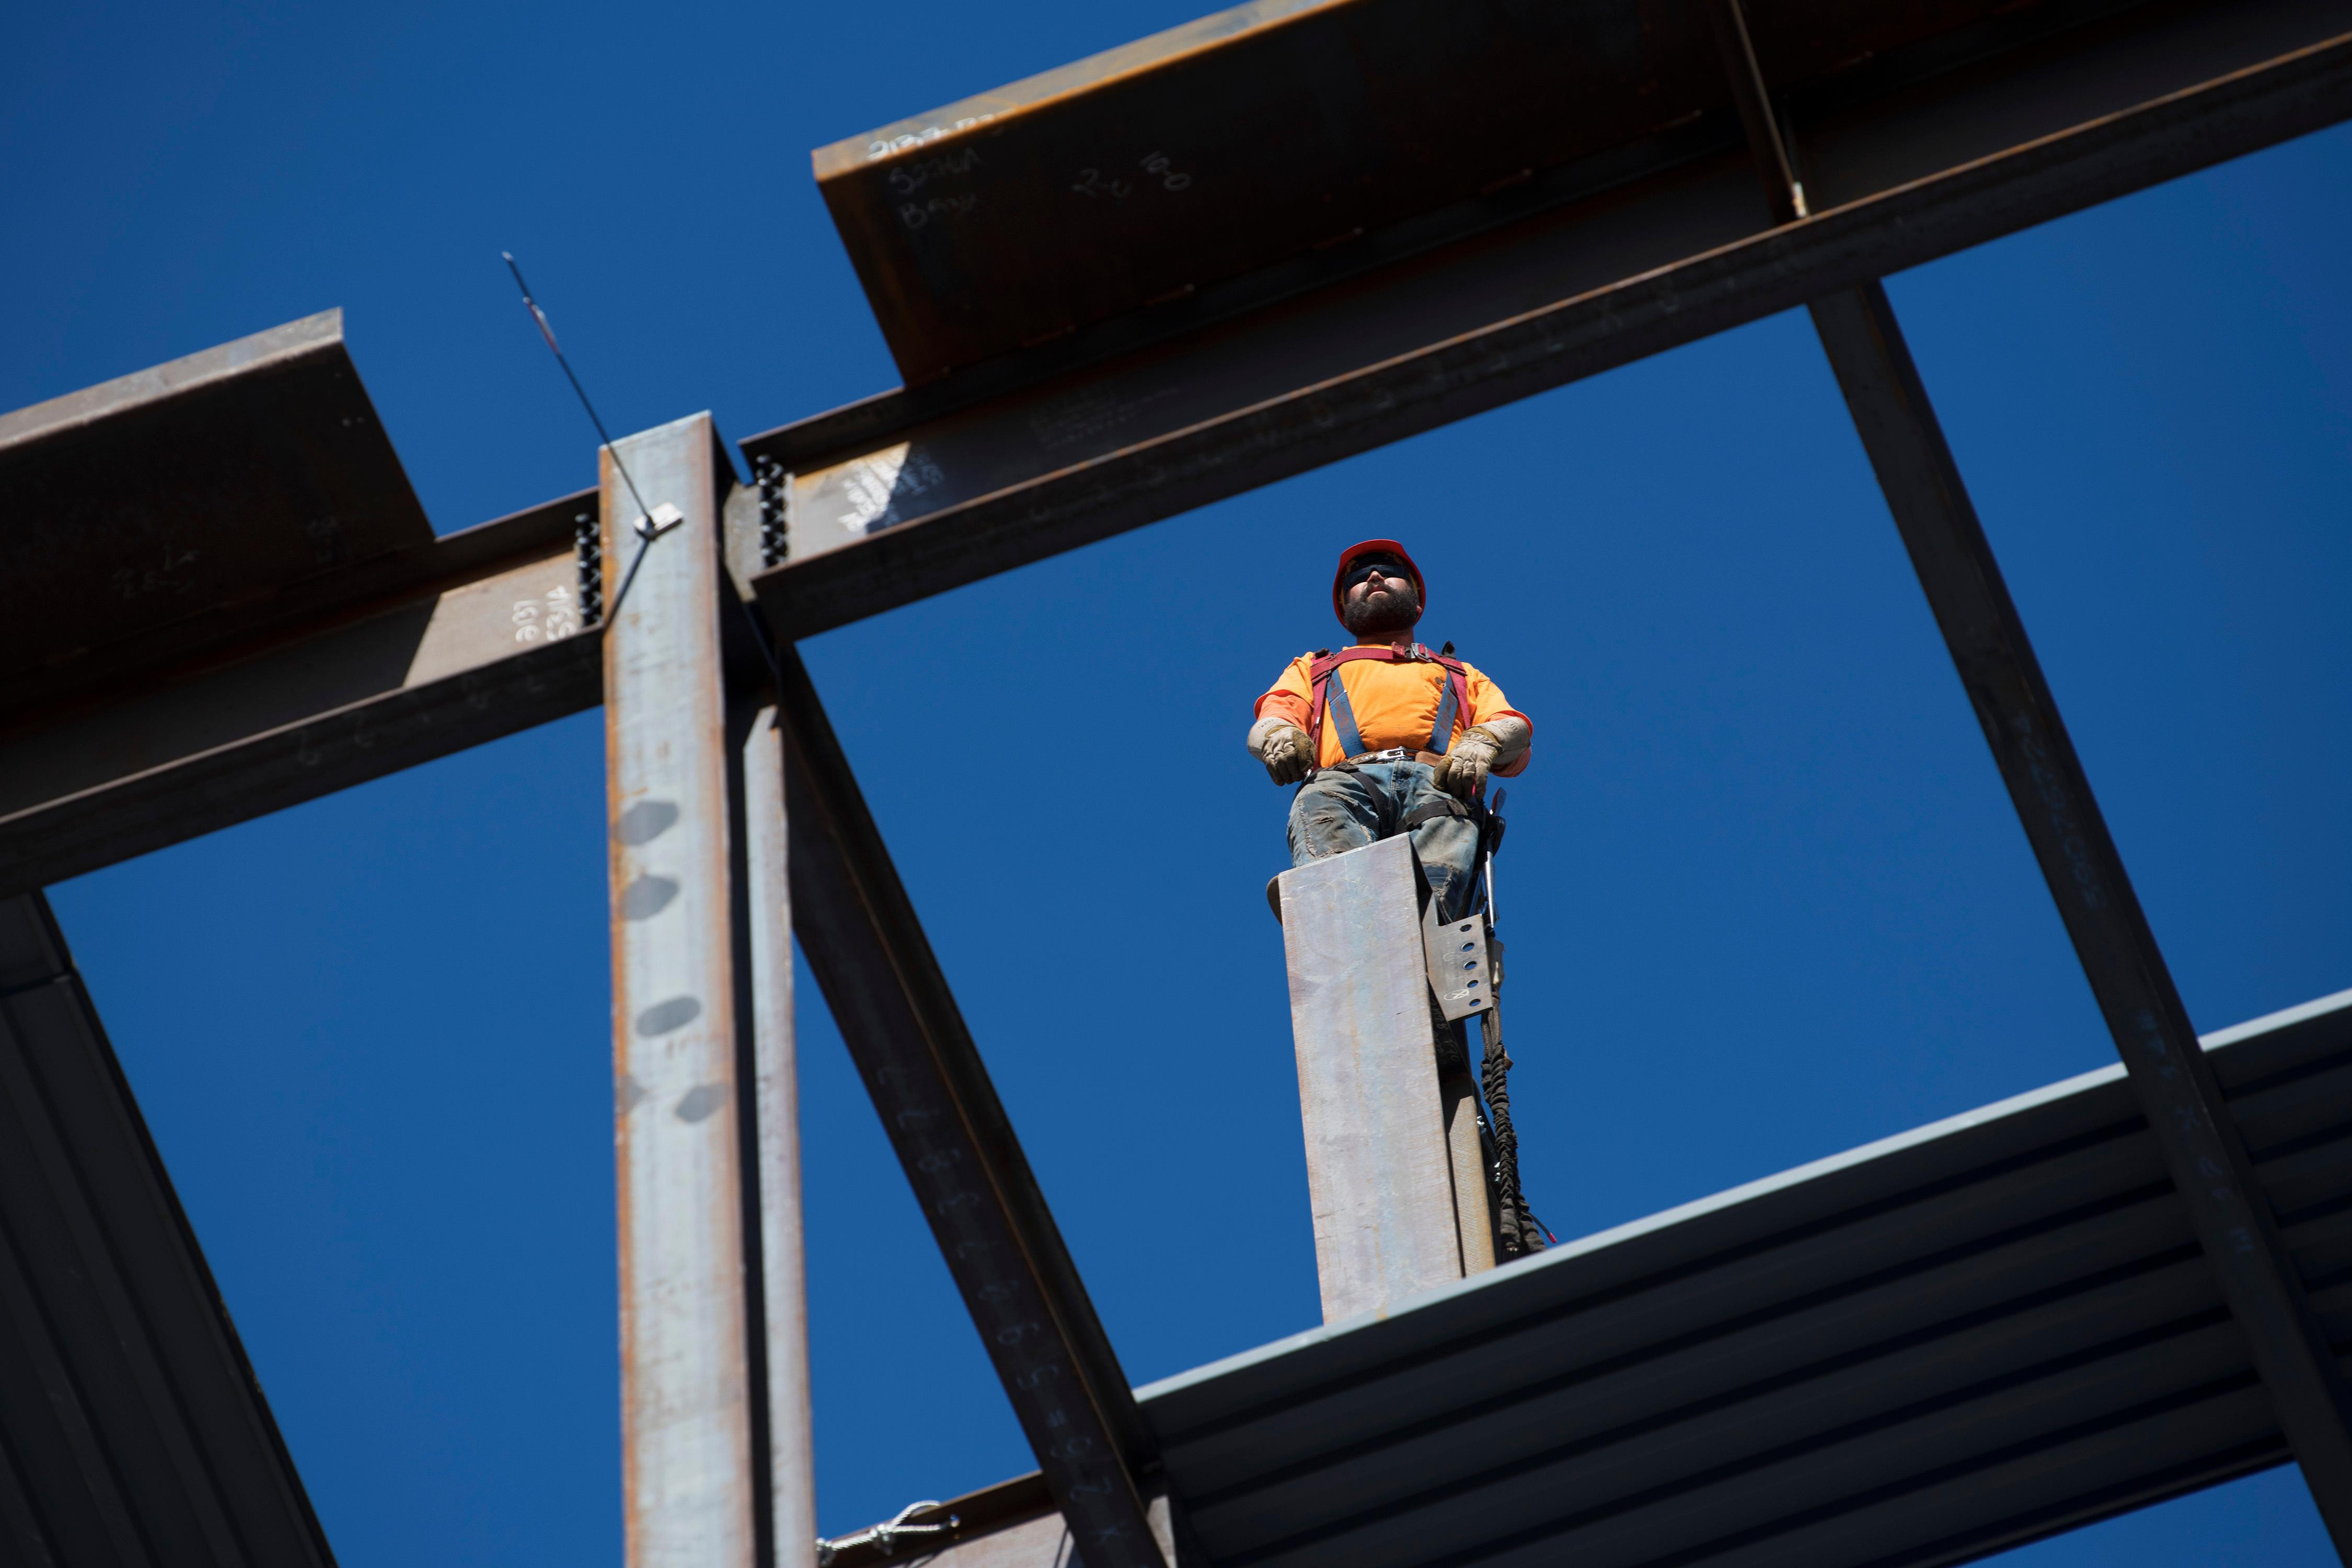 An iron worker waits for the final beam to be raised during the topping off ceremony for MGM Grand's expanded conference center Tuesday, January 30, 2018. CREDIT: Sam Morris/Las Vegas News Bureau